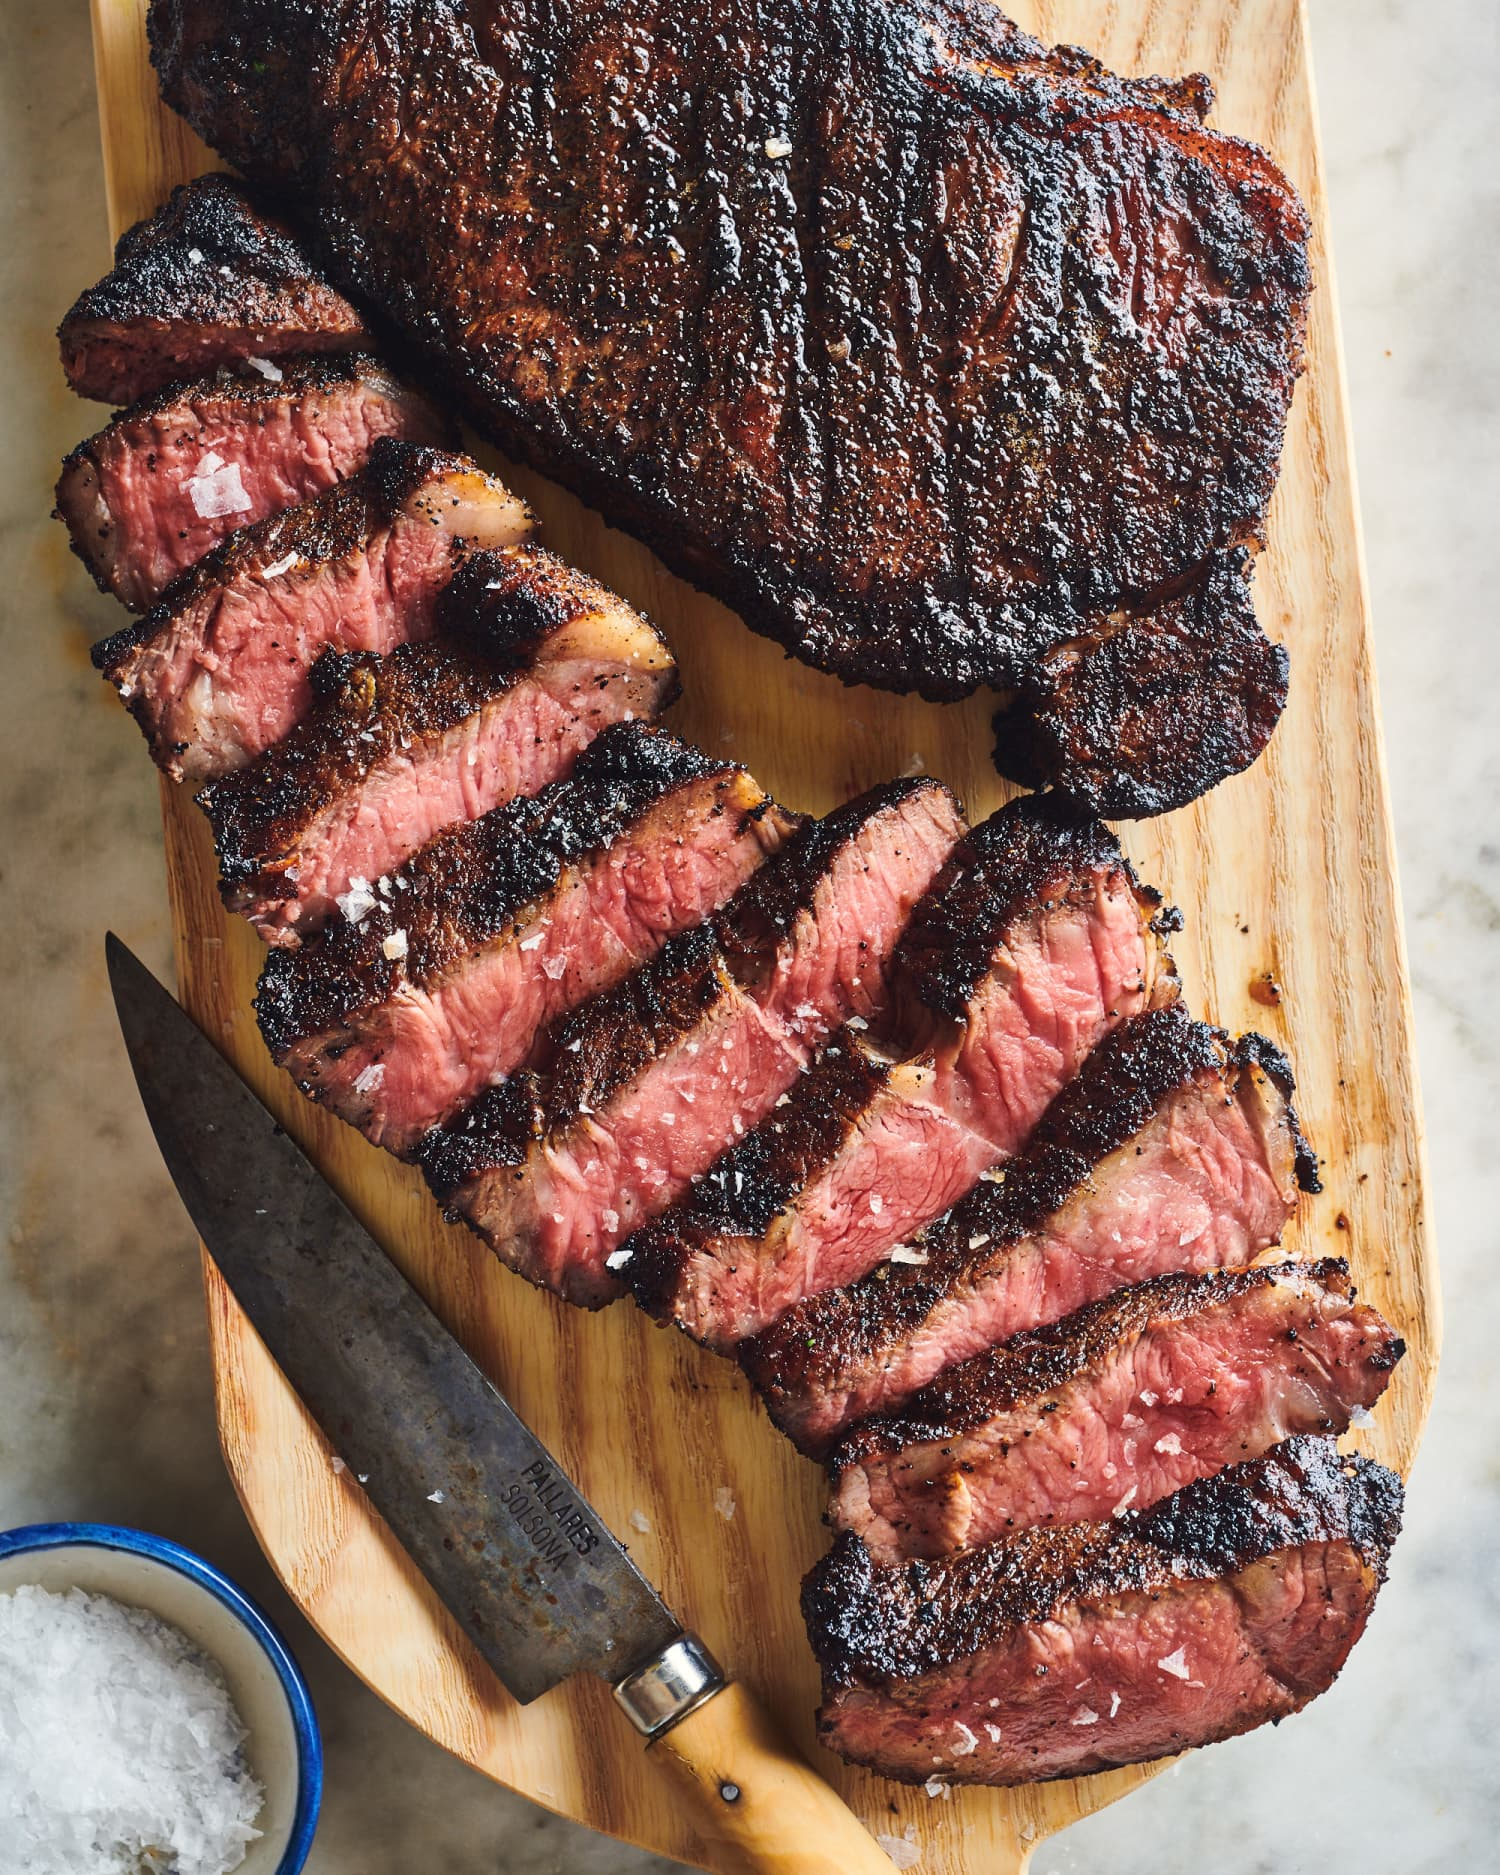 The One Ingredient That Makes at-Home Steak So Much Better